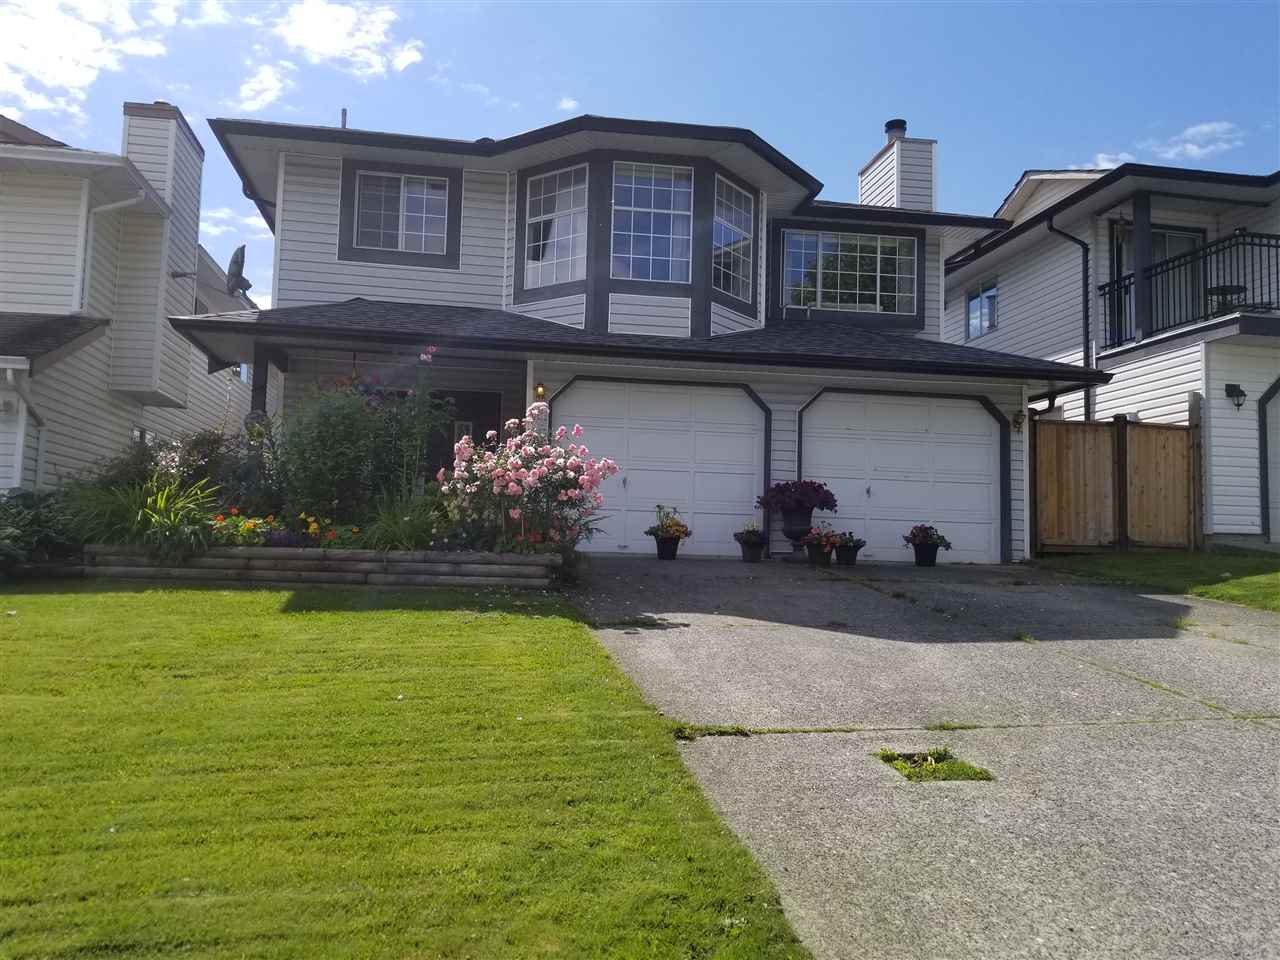 Main Photo: 3741 SUTHERLAND Street in Port Coquitlam: Oxford Heights House for sale : MLS®# R2280420